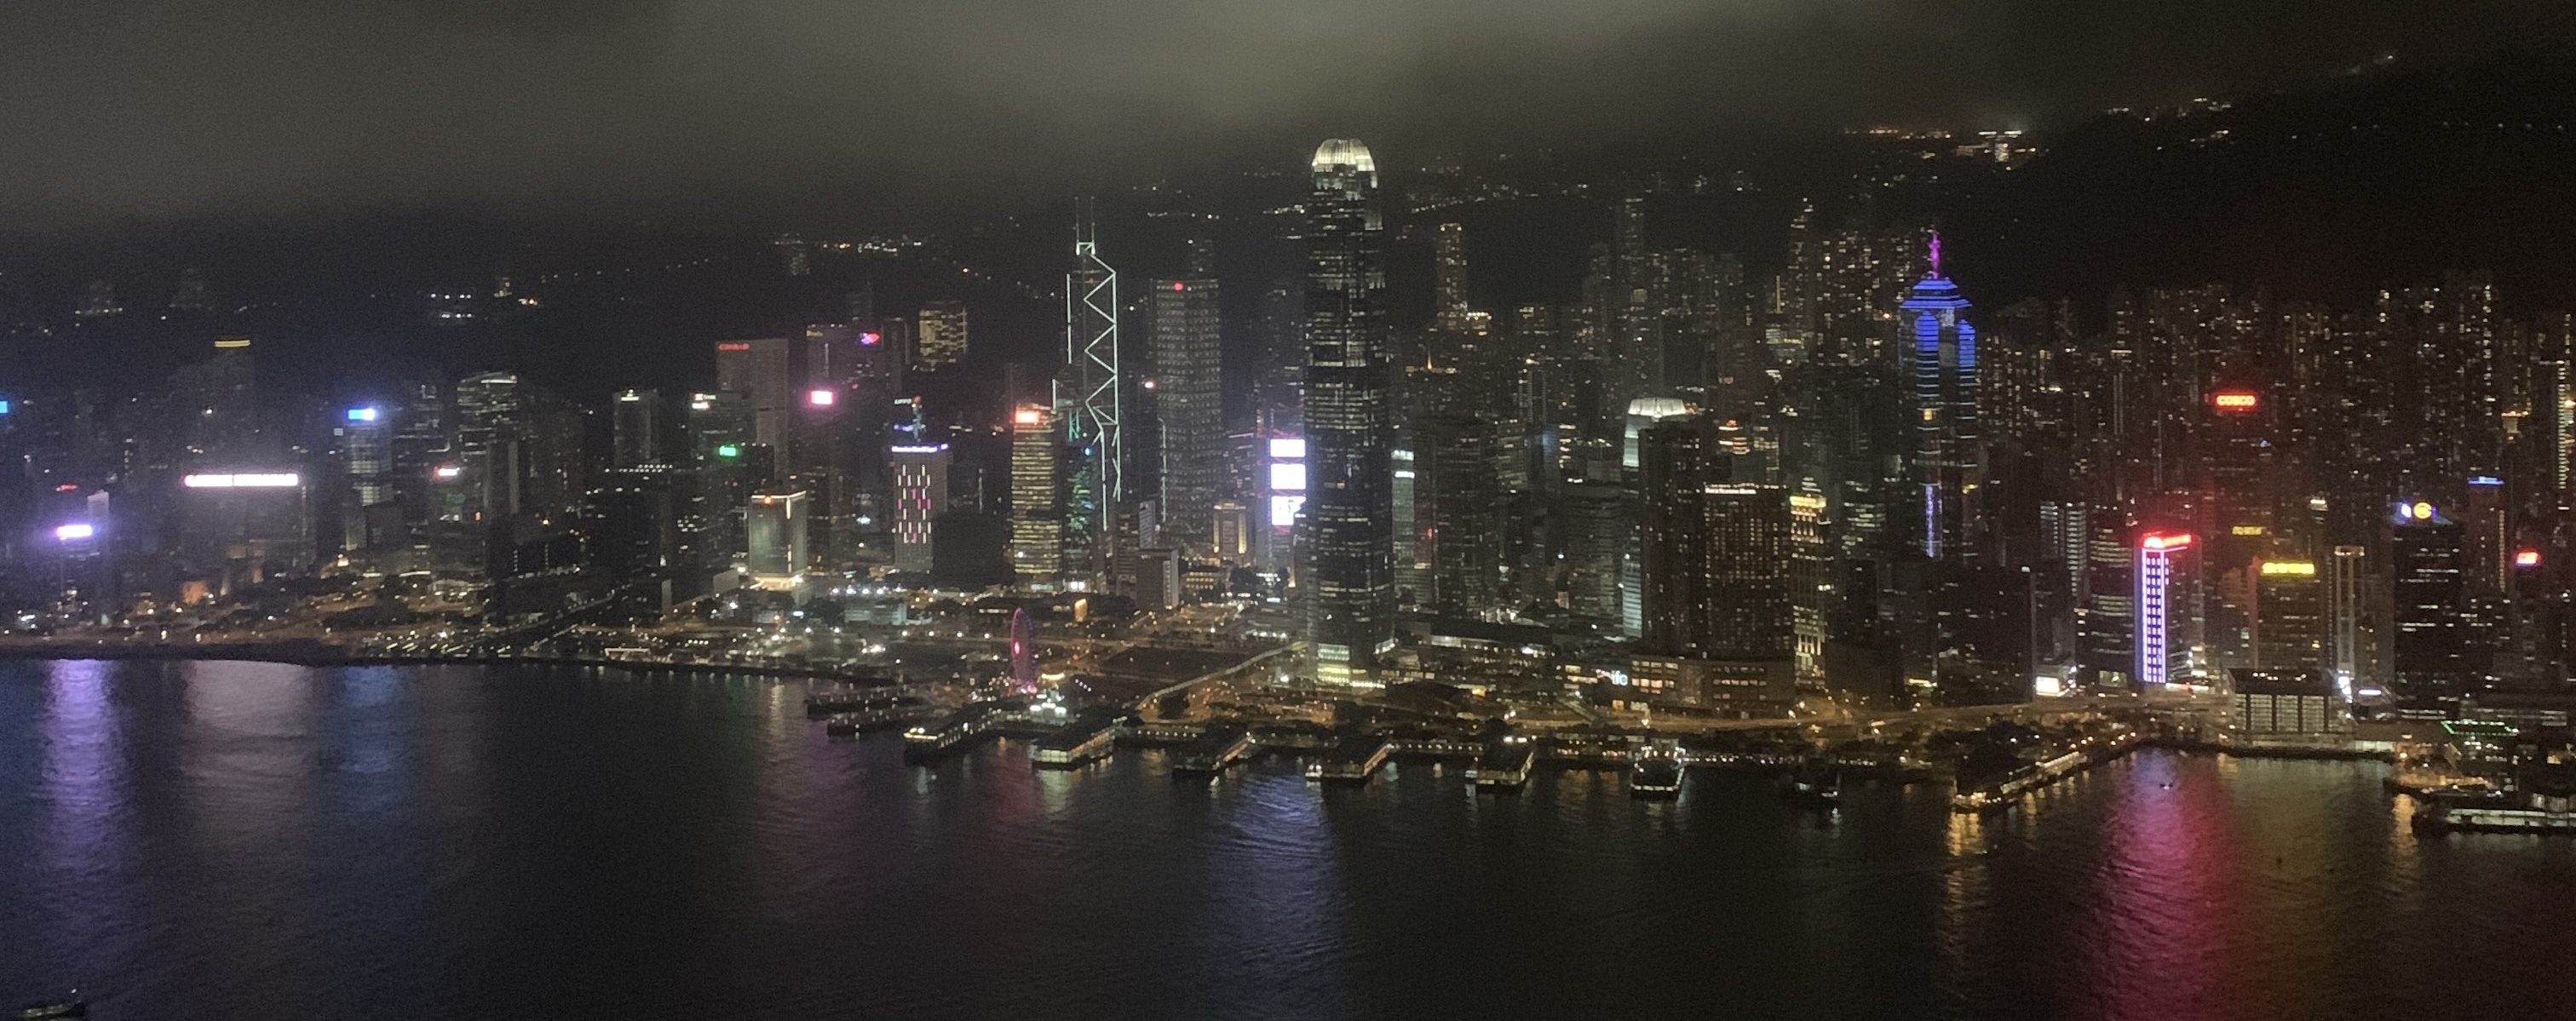 City Center of Hong Kong, a night view from The Peak